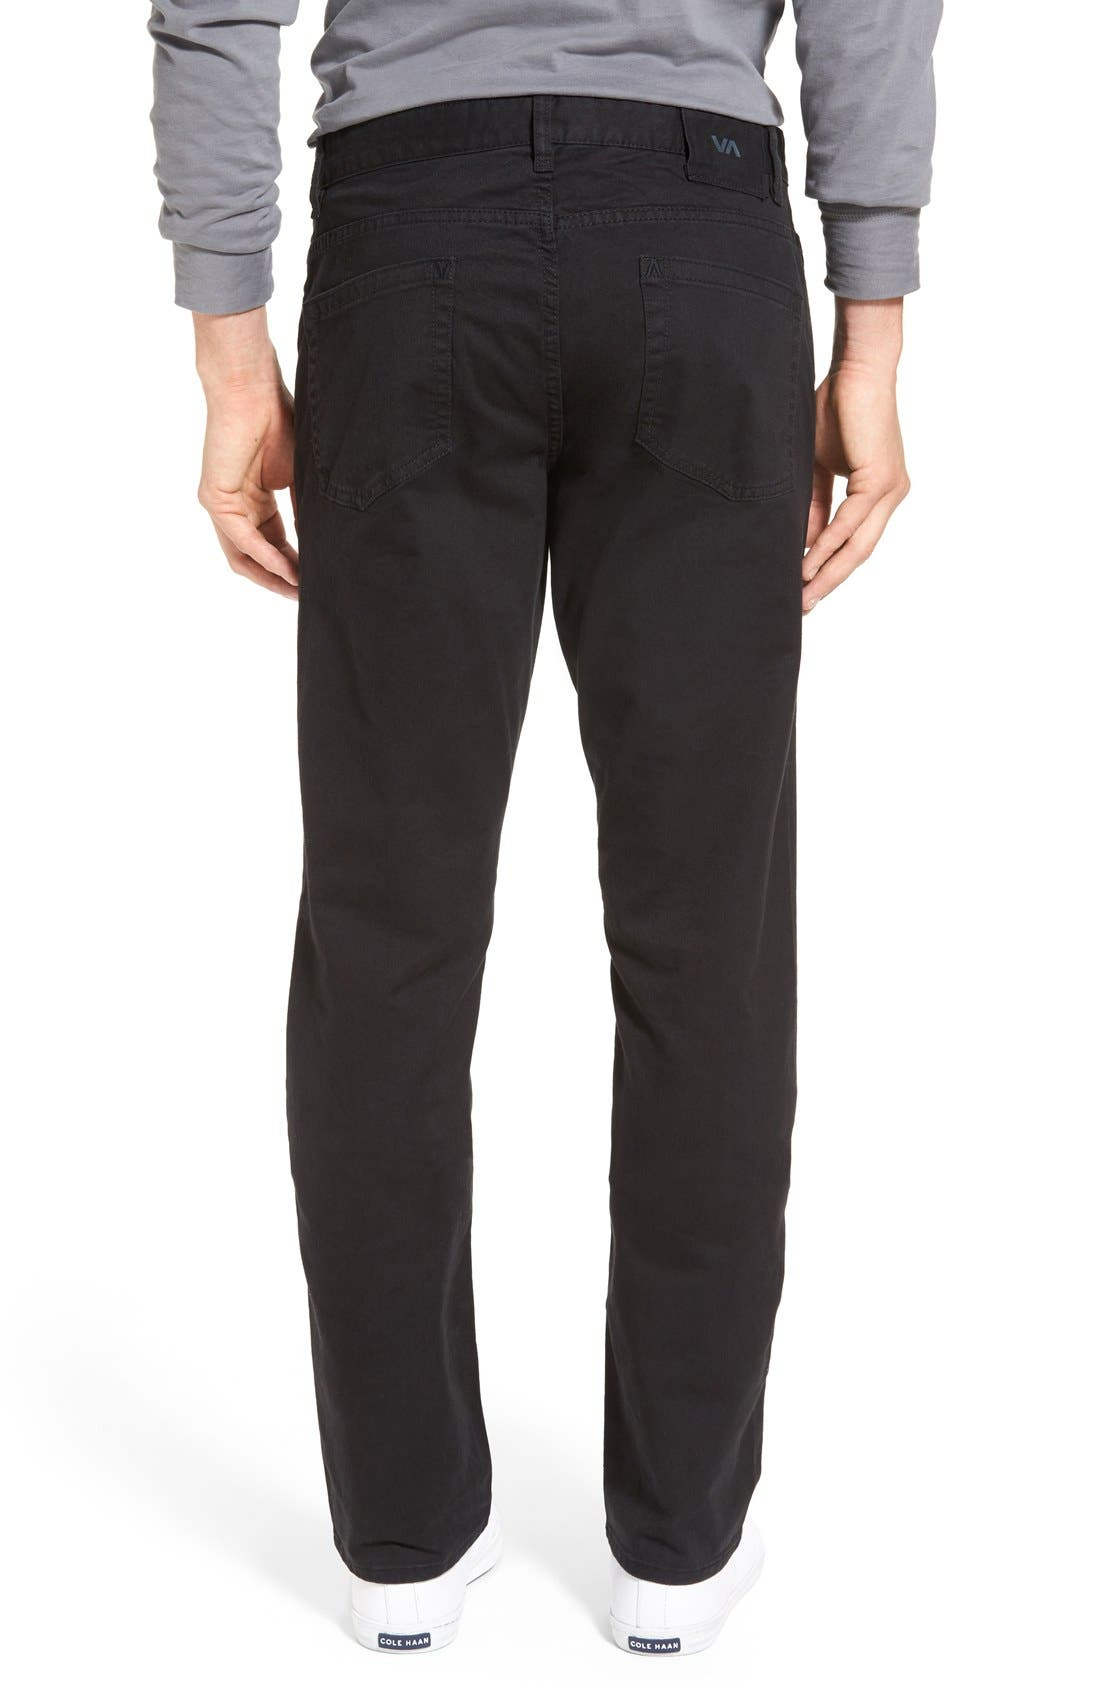 'Stay RVCA' Slim Straight Pants,                             Alternate thumbnail 5, color,                             001